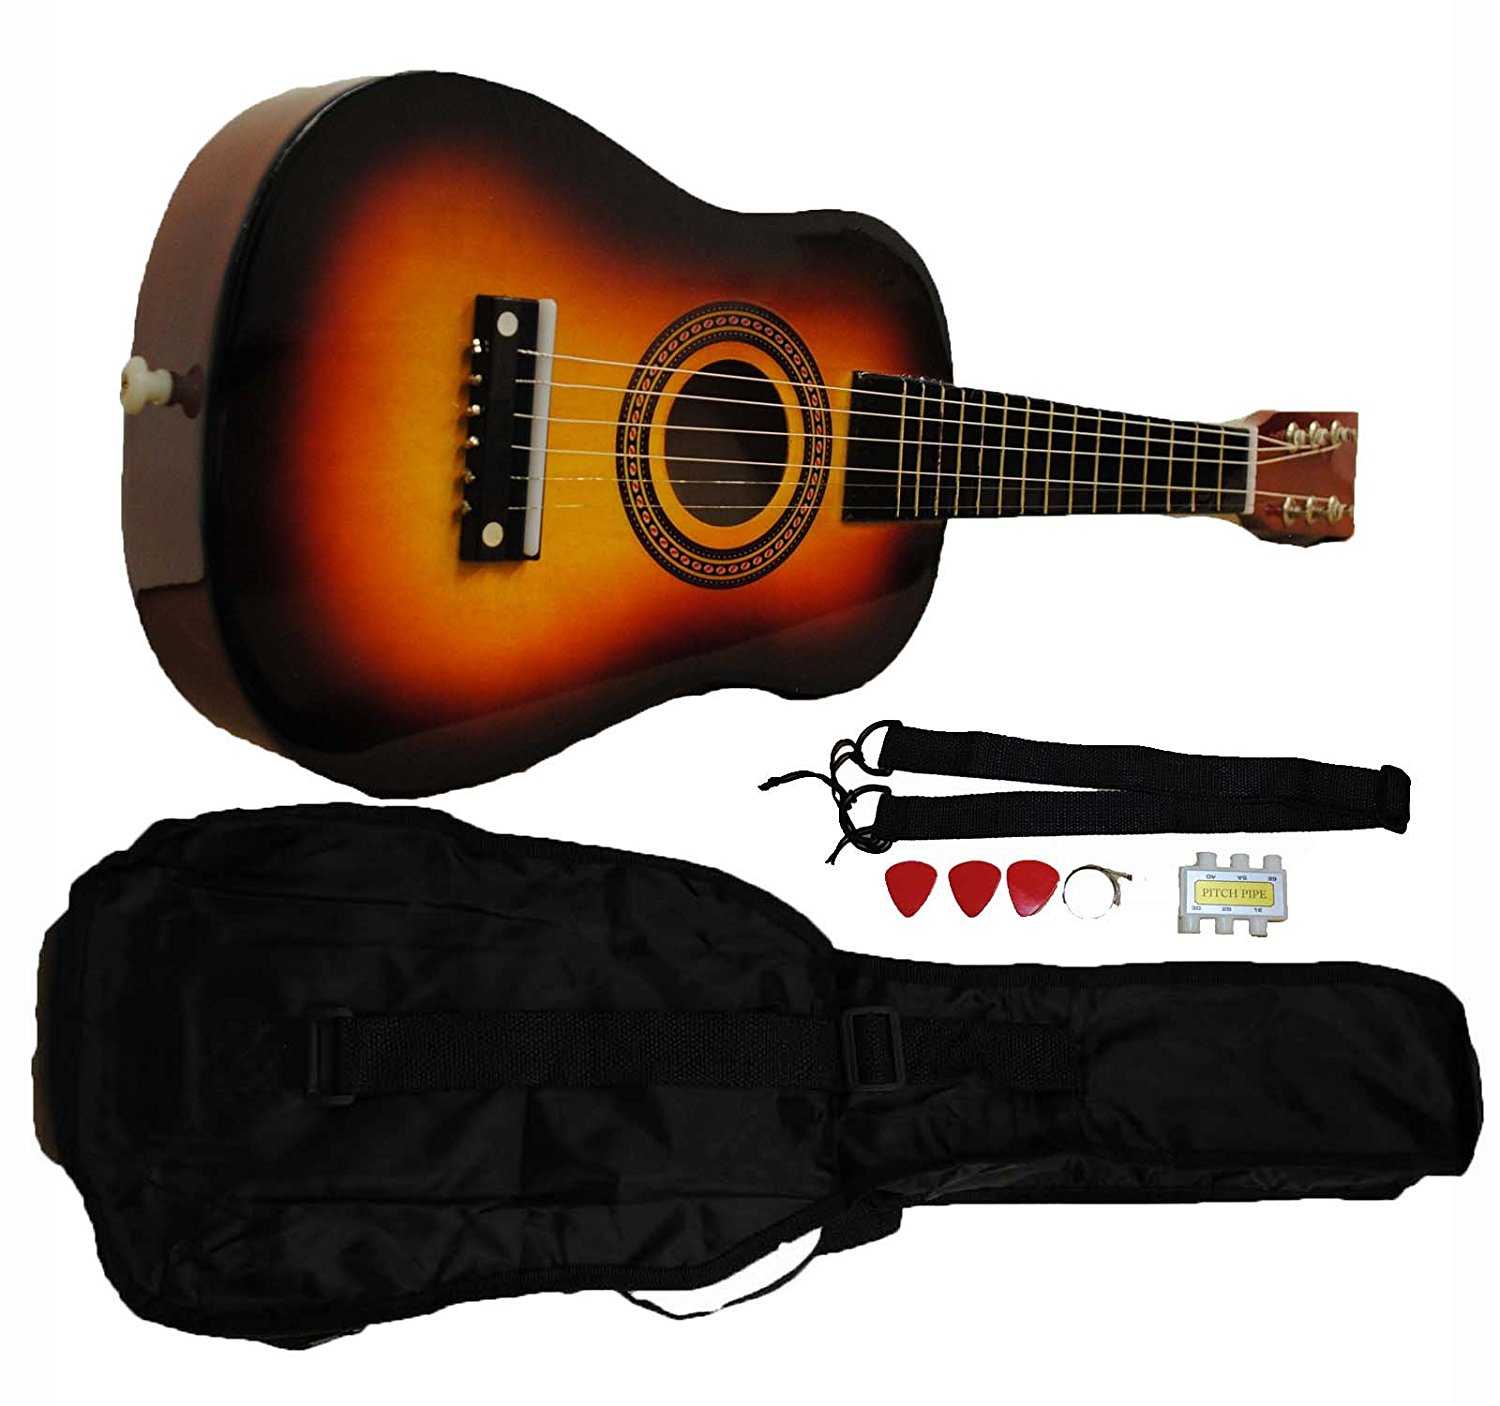 Mini Kids Acoustic Toy Guitar Kit Gig Bag + Picks + Strap + Tuner Sunburst by